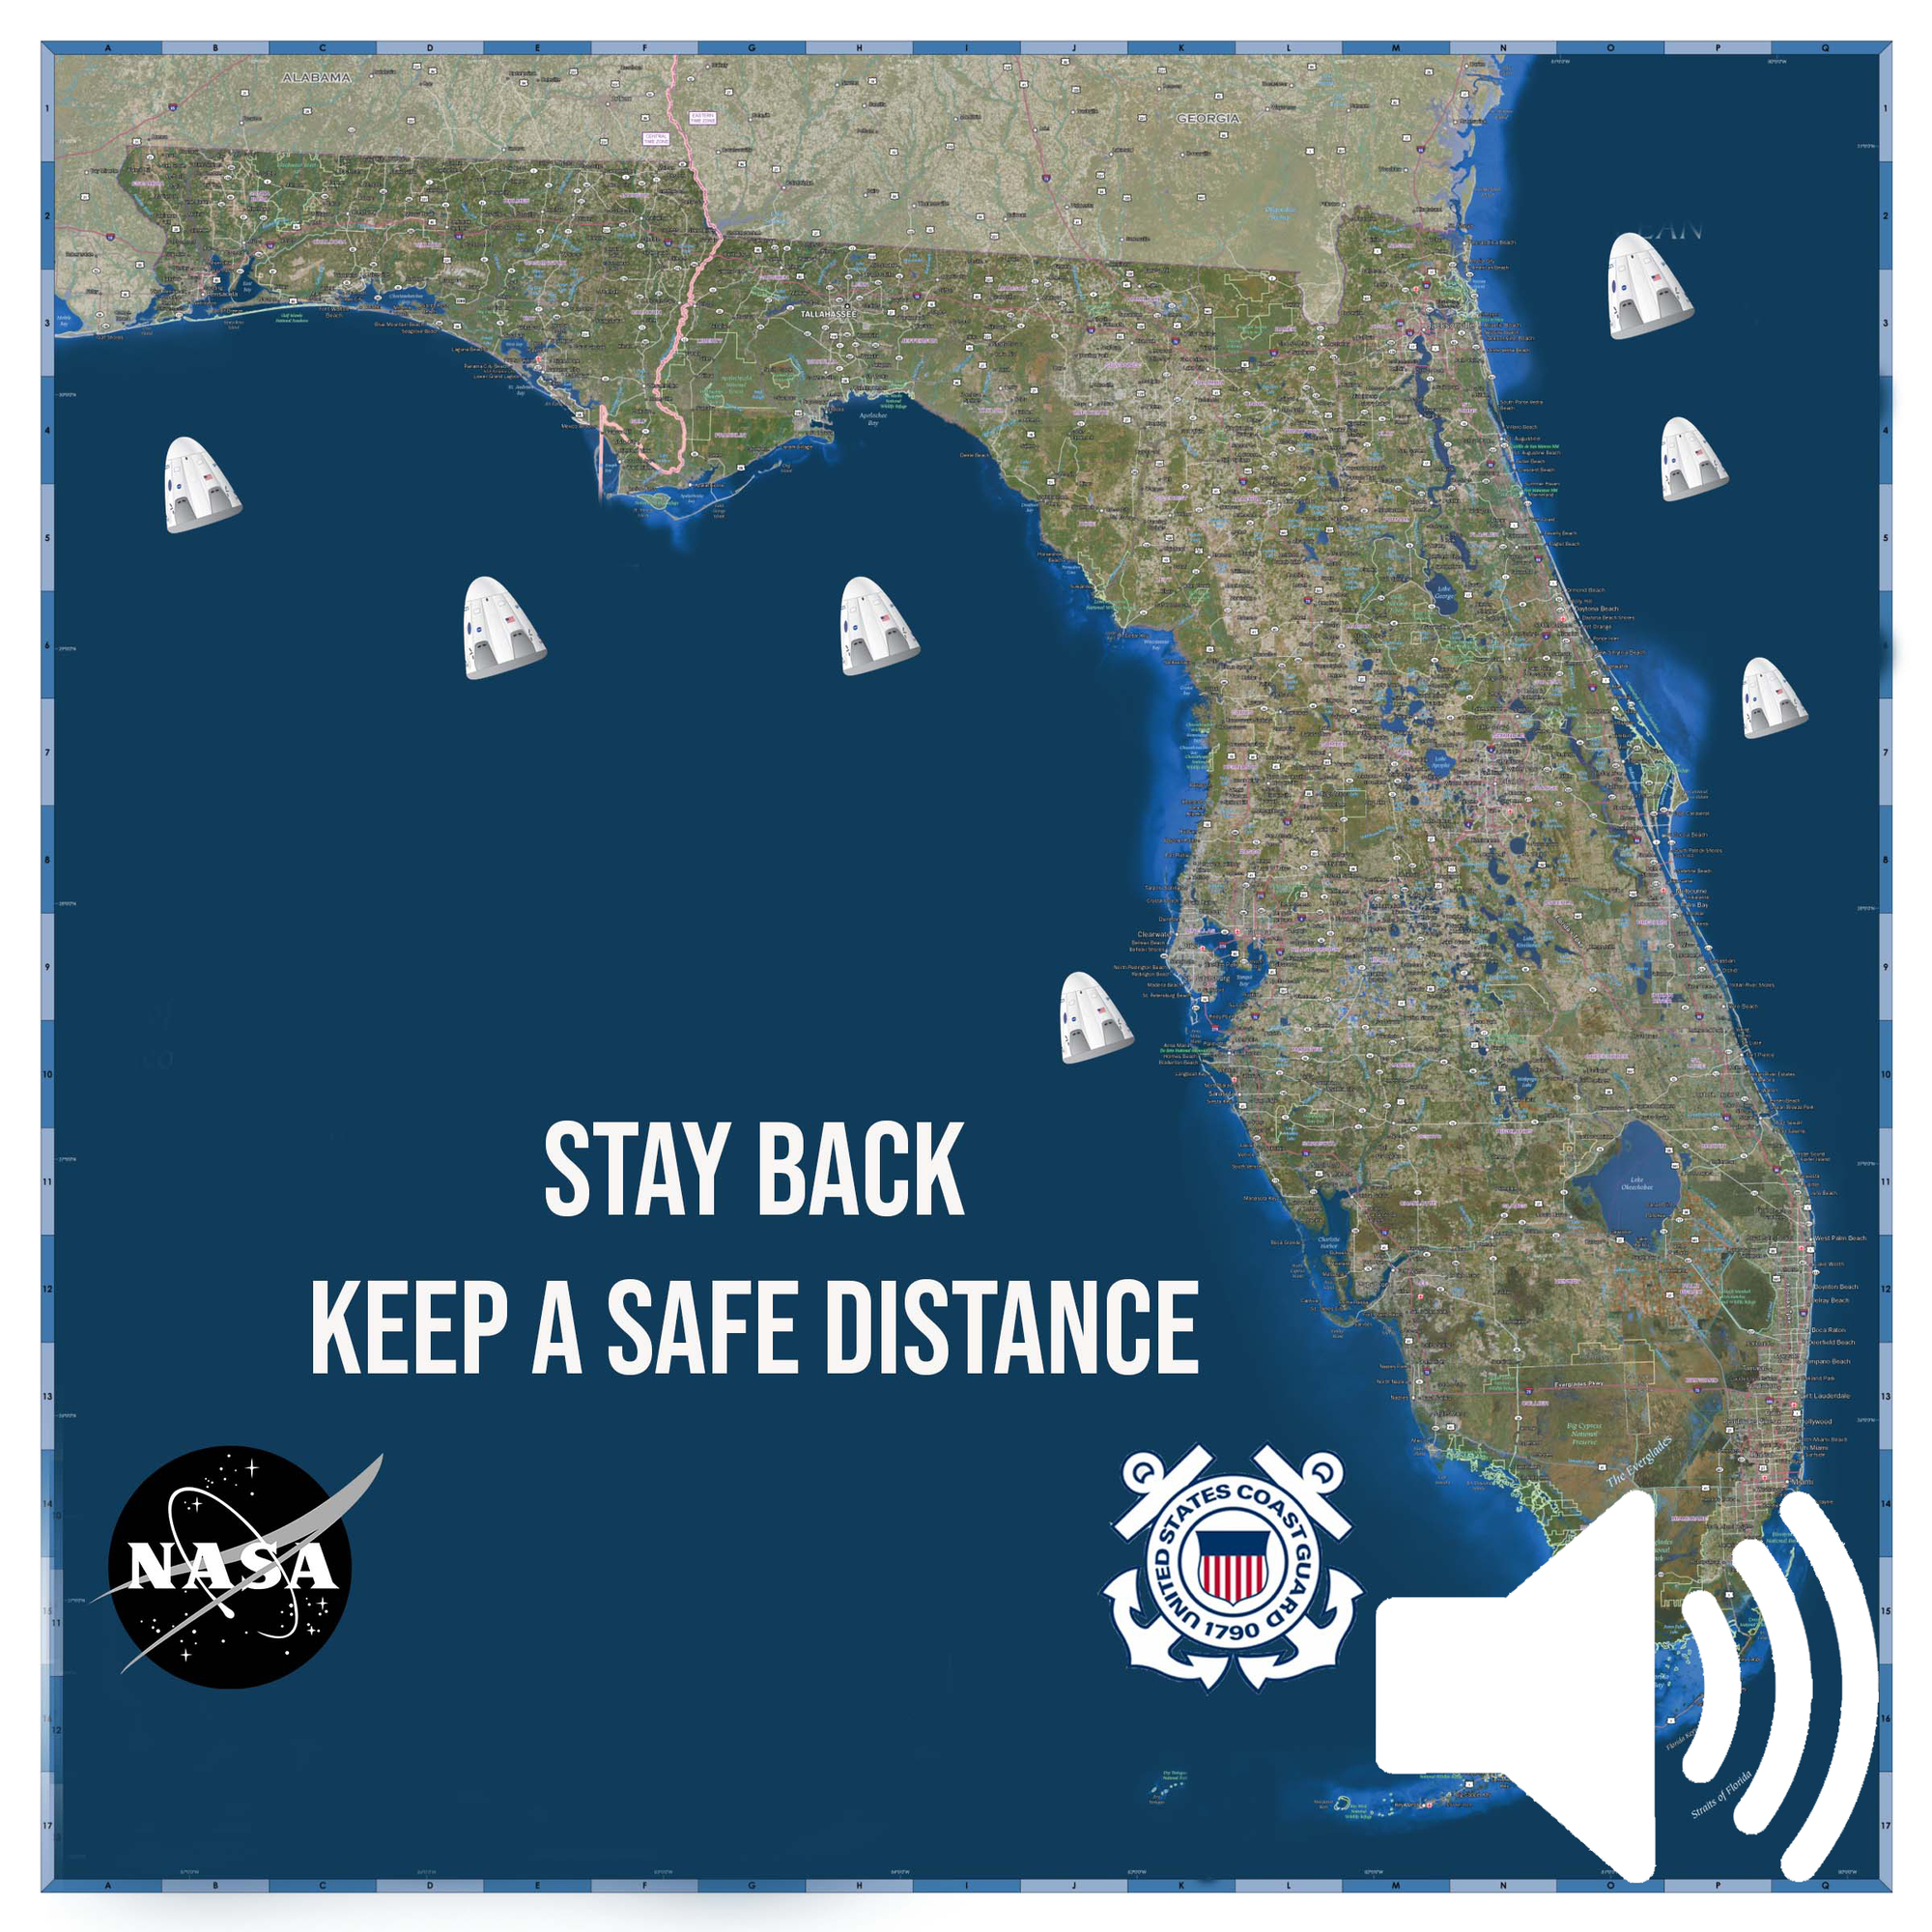 The Coast Guard reminds mariners to stay back from maritime recovery sites during recovery operations of spacecraft and astronauts. NASA's SpaceX Crew-1 mission is currently targeting a return to Earth Saturday morning with an anticipated splashdown in the Gulf of Mexico off the coast of Florida. All boaters should tune into Broadcast Notices to Mariners on a VHF FM-Channel 16 marine radio and check the Local Notices to Mariners for updates.